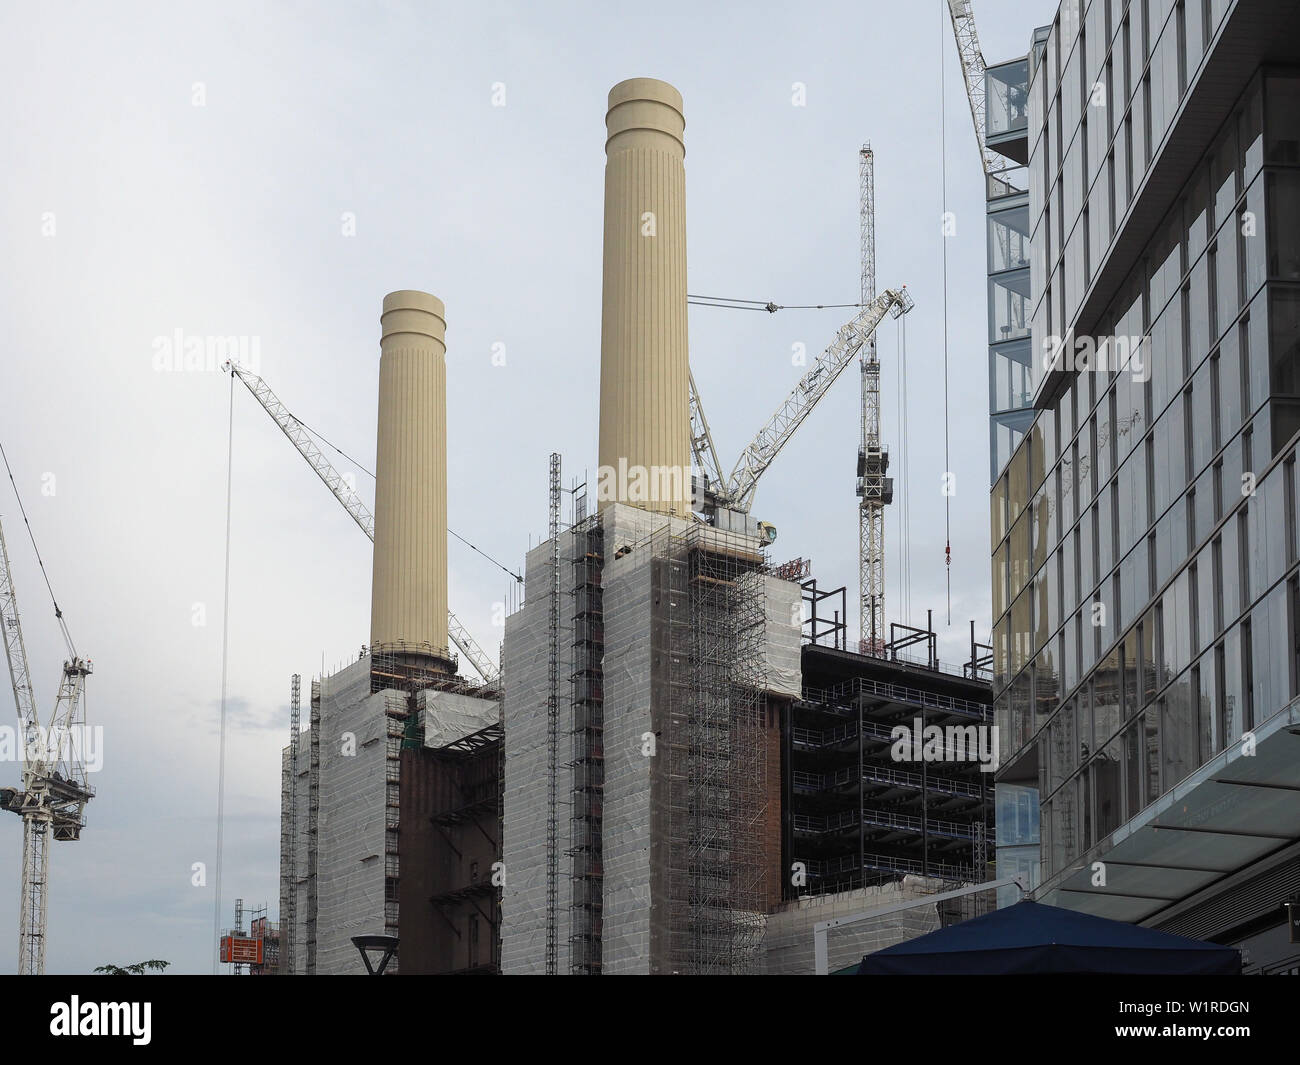 LONDON, UK - CIRCA JUNE 2019: Battersea Power Station redevelopment building site - Stock Image